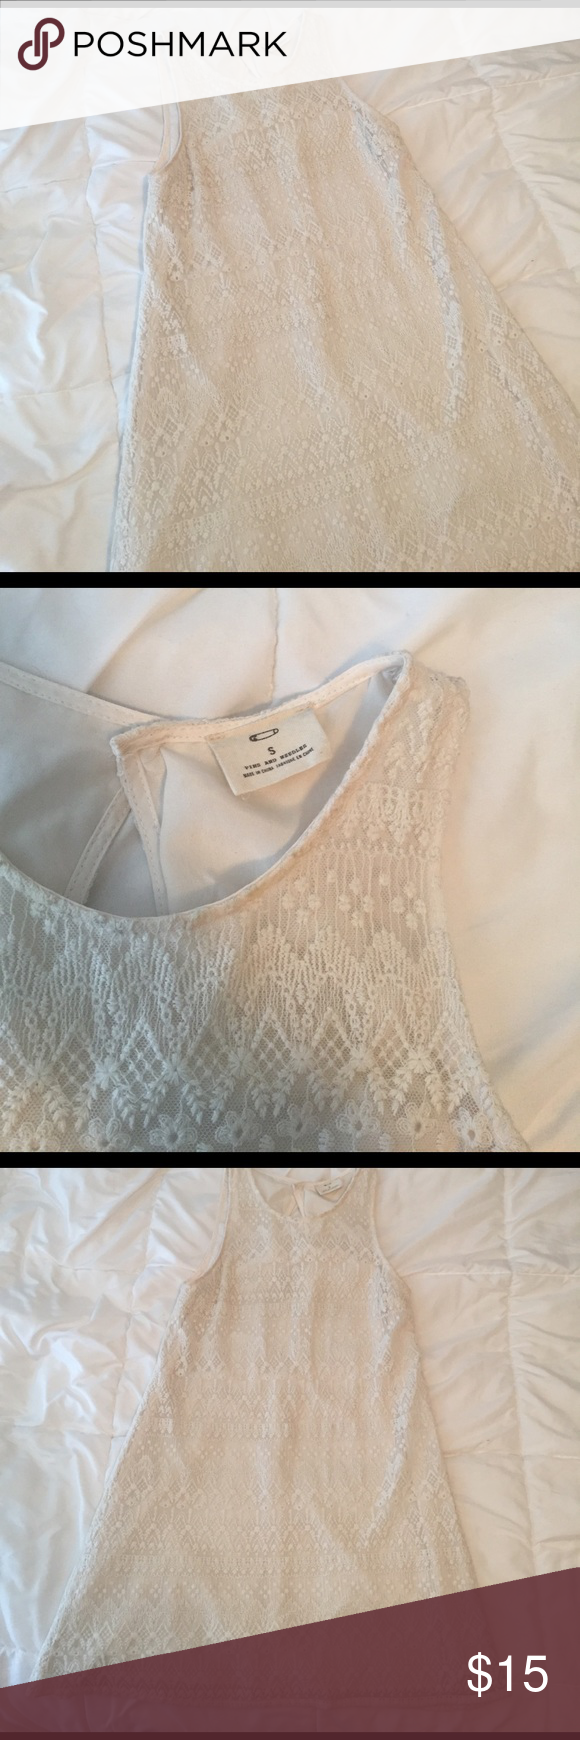 🆕 Urban outfitters white lace dress size small Pins and needles label, would at urban outfitters size small white lace dress. Sleeveless with keyhole cut out at the back. Feed is fully lined. Very pretty and great for spring! Urban Outfitters Dresses